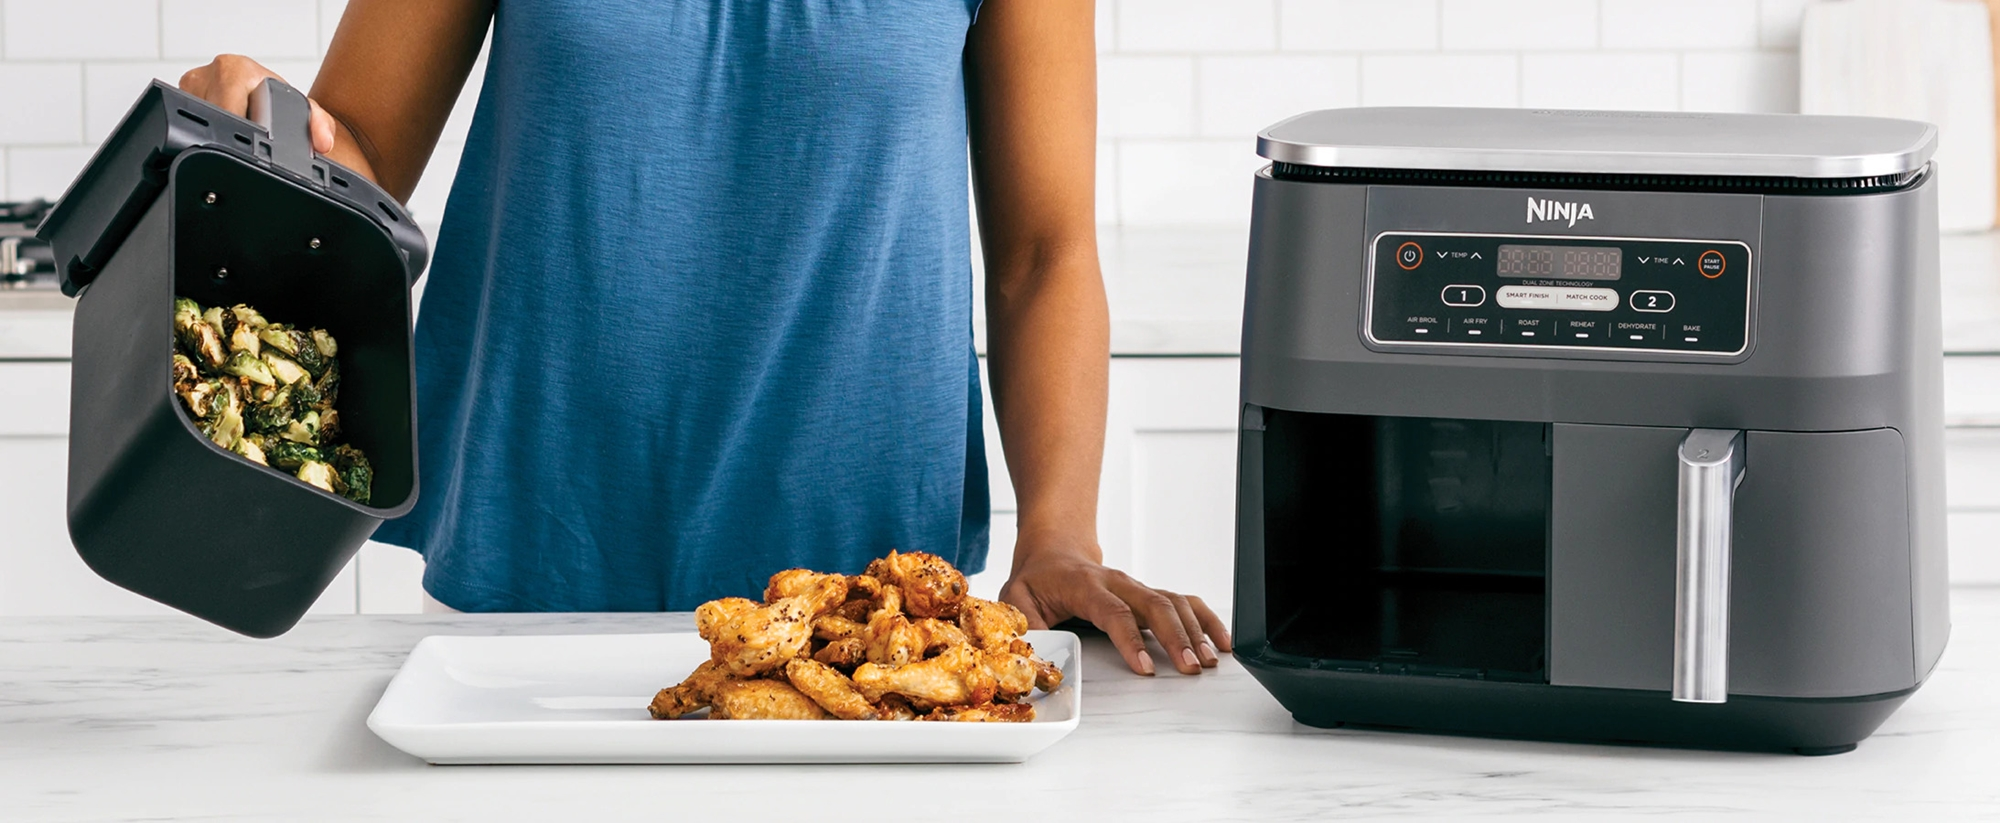 Do Air Fryers Actually Live Up to the Hype?